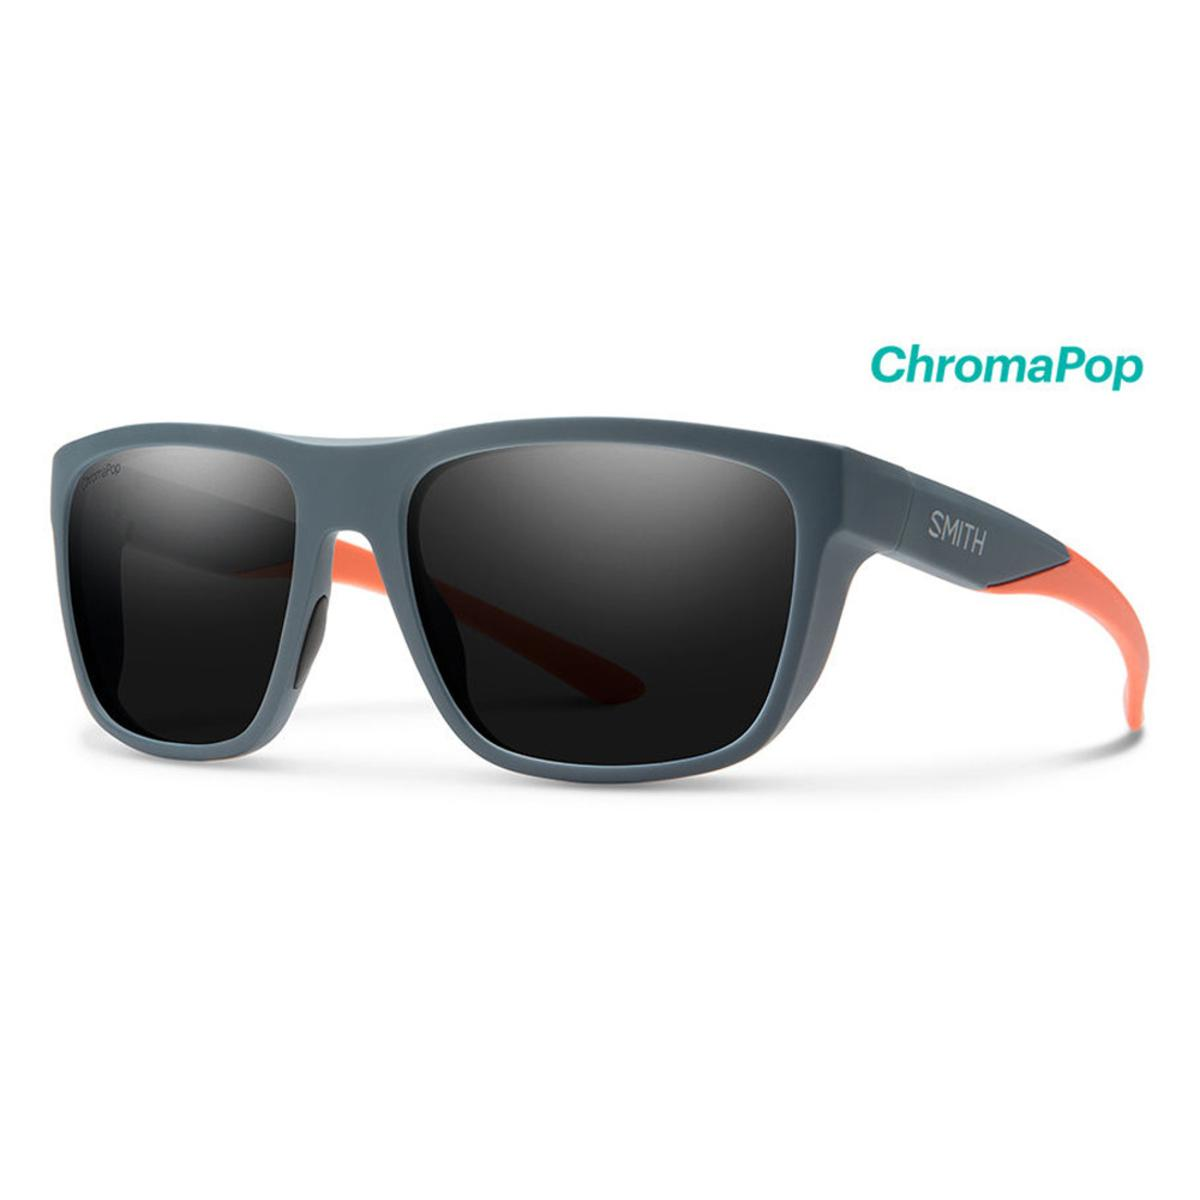 f0ebf1ec78c8 Smith Optics Barra Sunglasses Chromapop Polarized Black - Matte Thunder  Orange Frame - The Warming Store